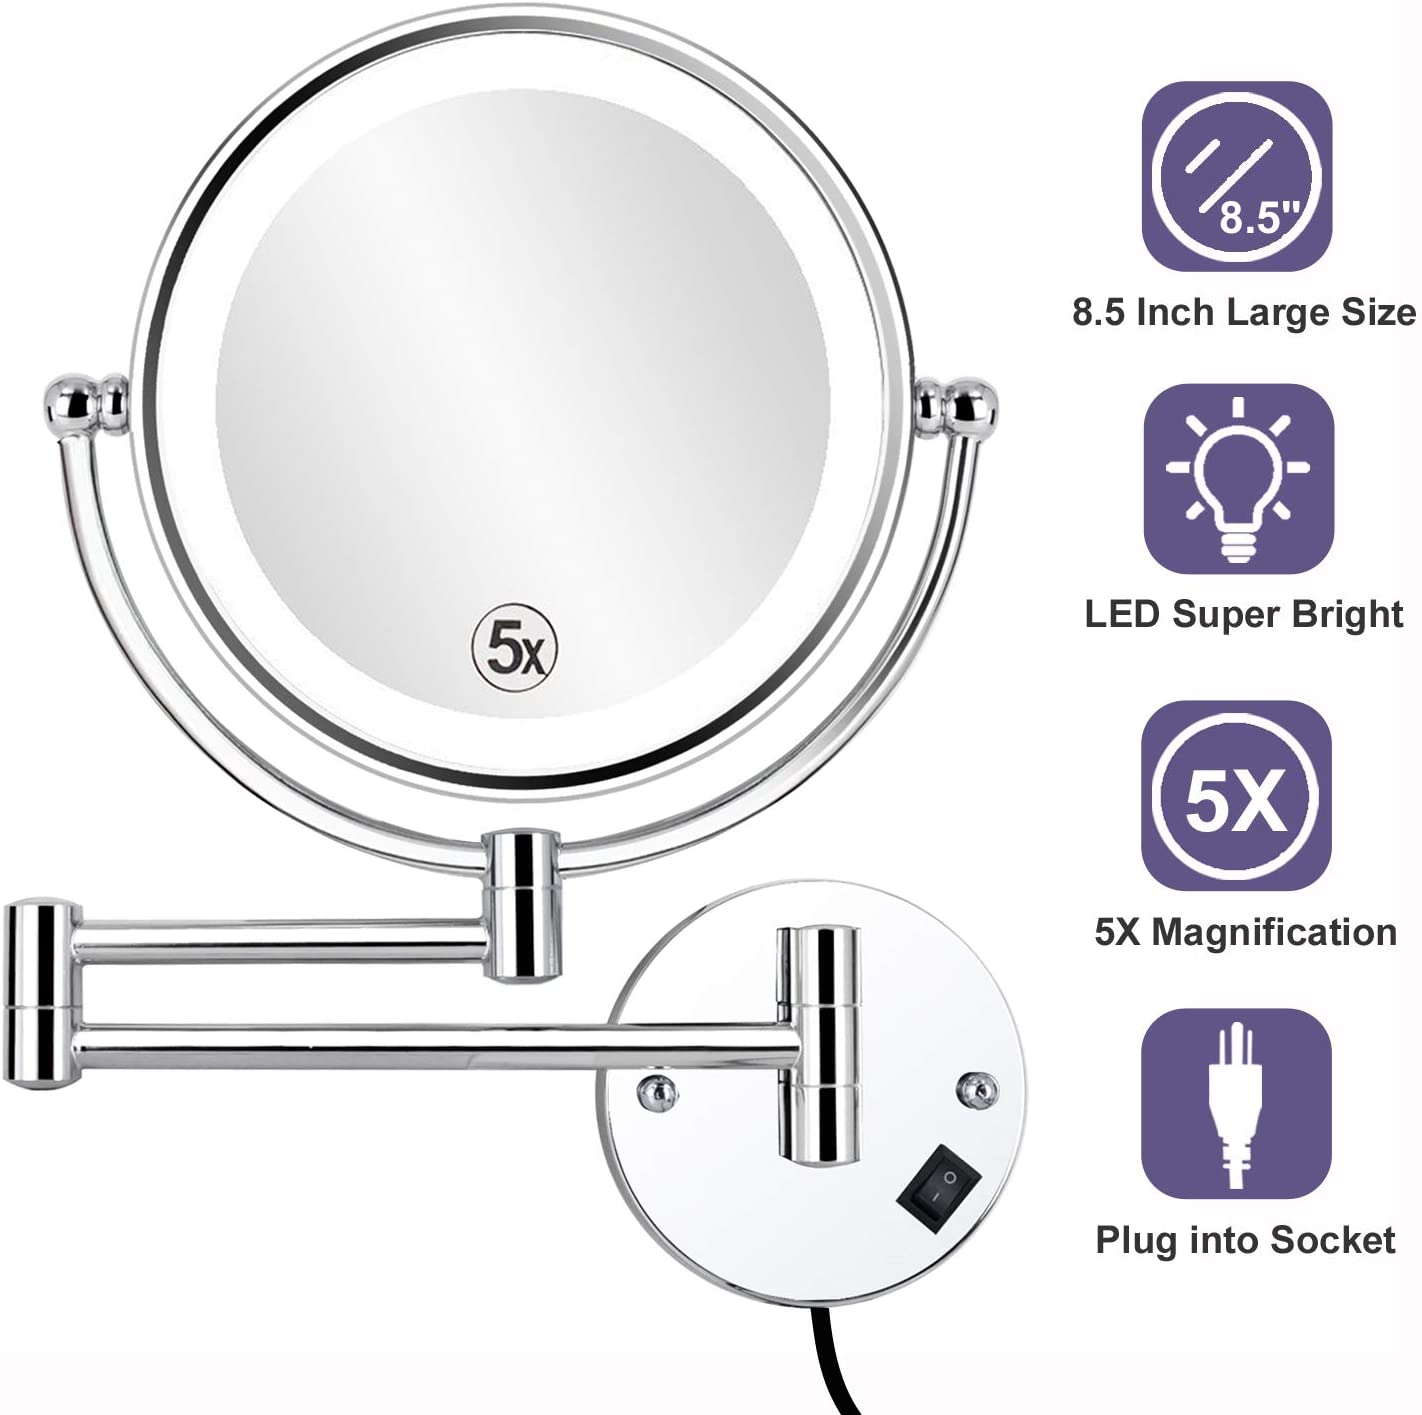 ALHAKIN 8.5 Inch LED Lighted Wall Mounted Makeup Mirror with 5X Magnification, Double Sided Swivel Vanity Mirror for Bathroom, Chrome Finish